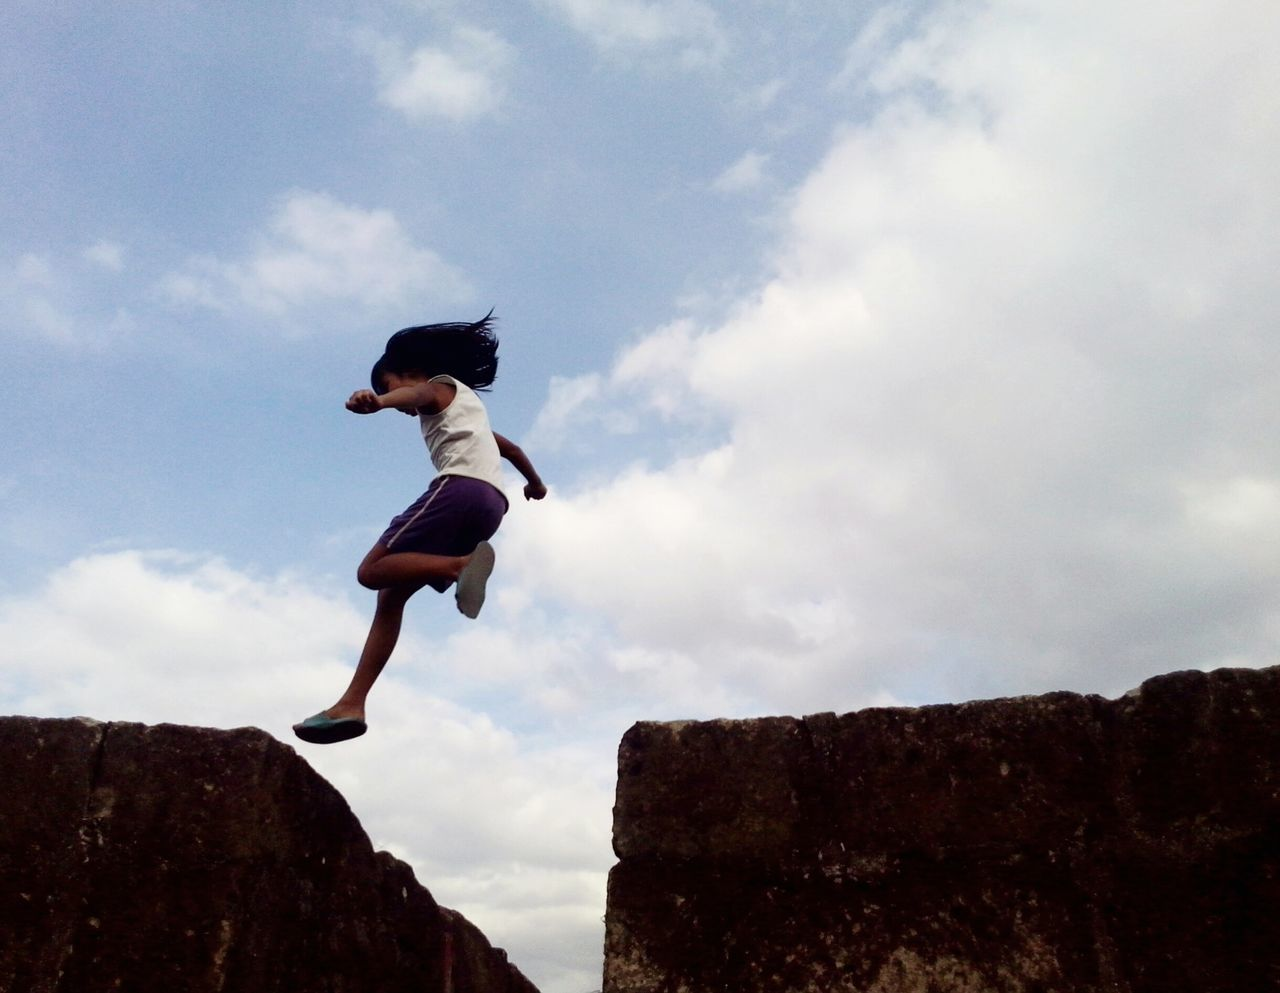 LOW ANGLE VIEW OF YOUNG MAN JUMPING AGAINST CLOUDY SKY